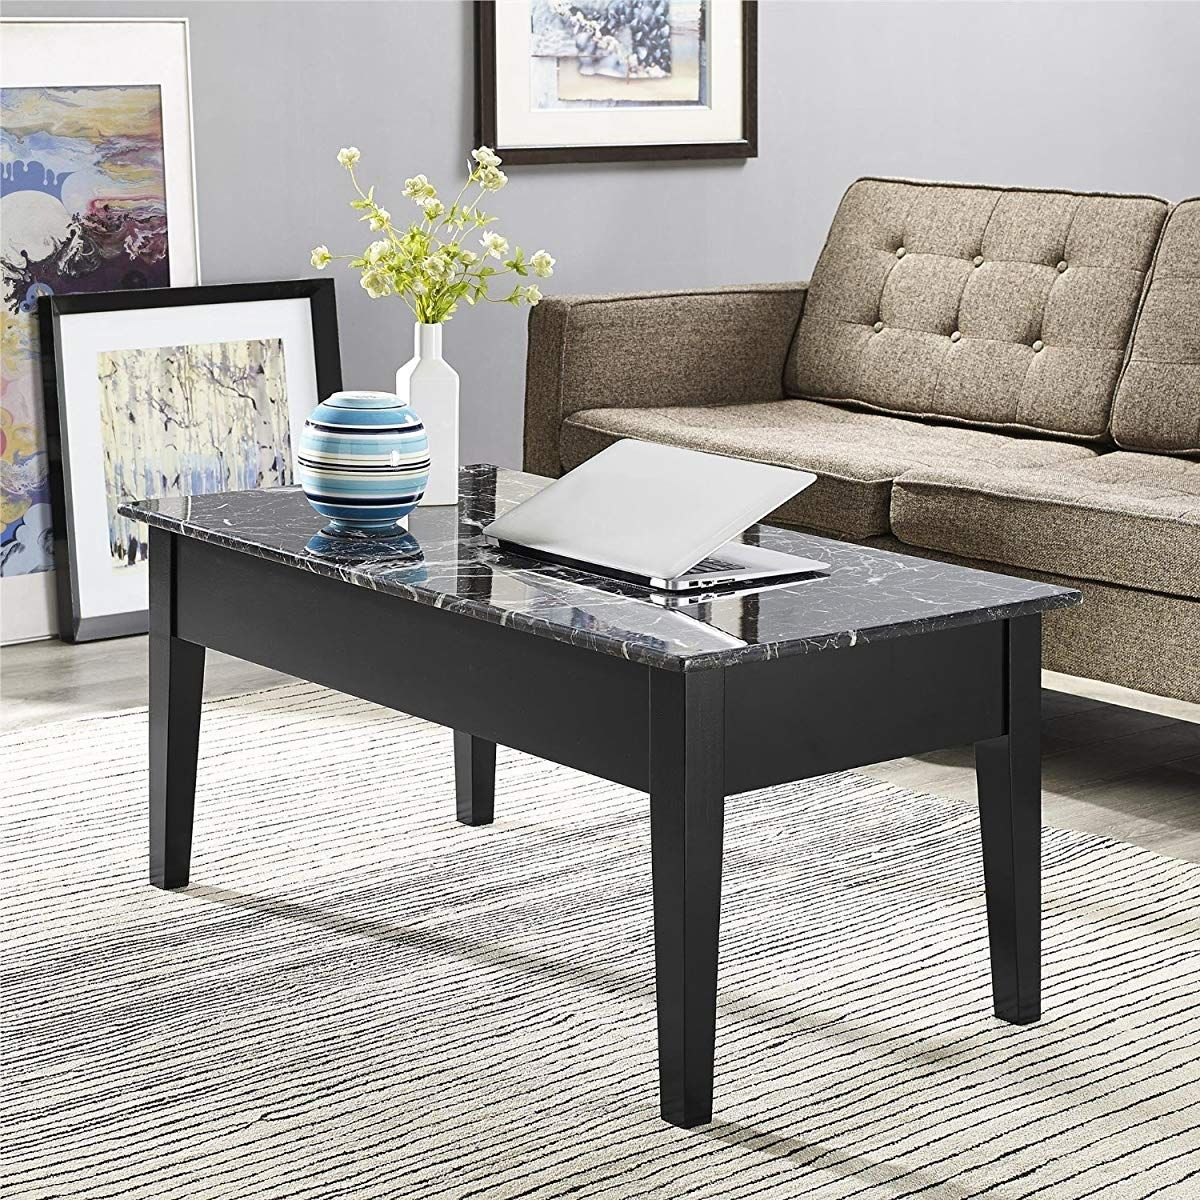 Marble Lift Top Storage Coffee Table Black Faux Marble Coffee